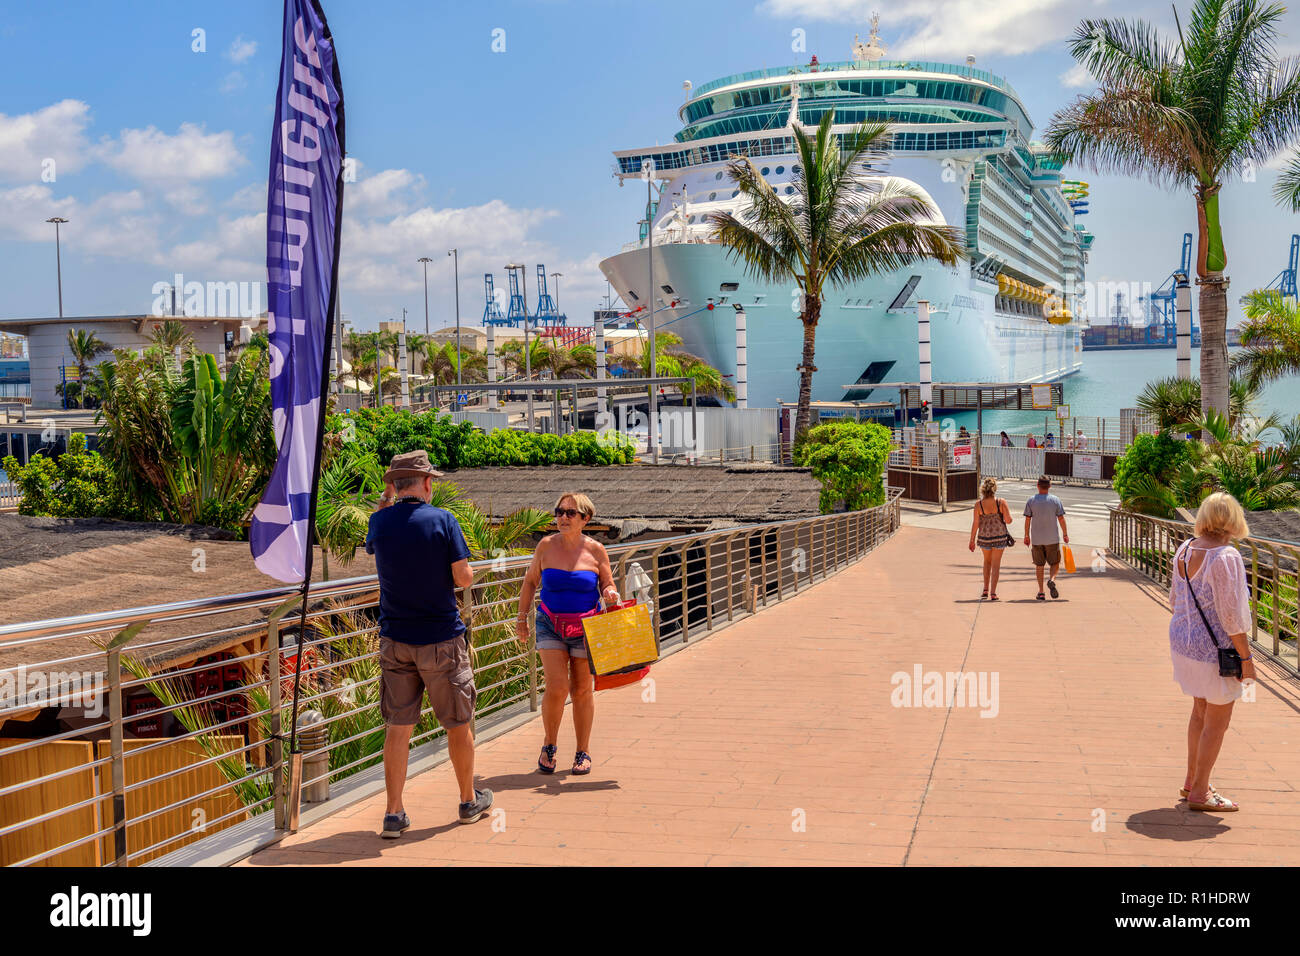 the-royal-caribbean-ship-independence-of